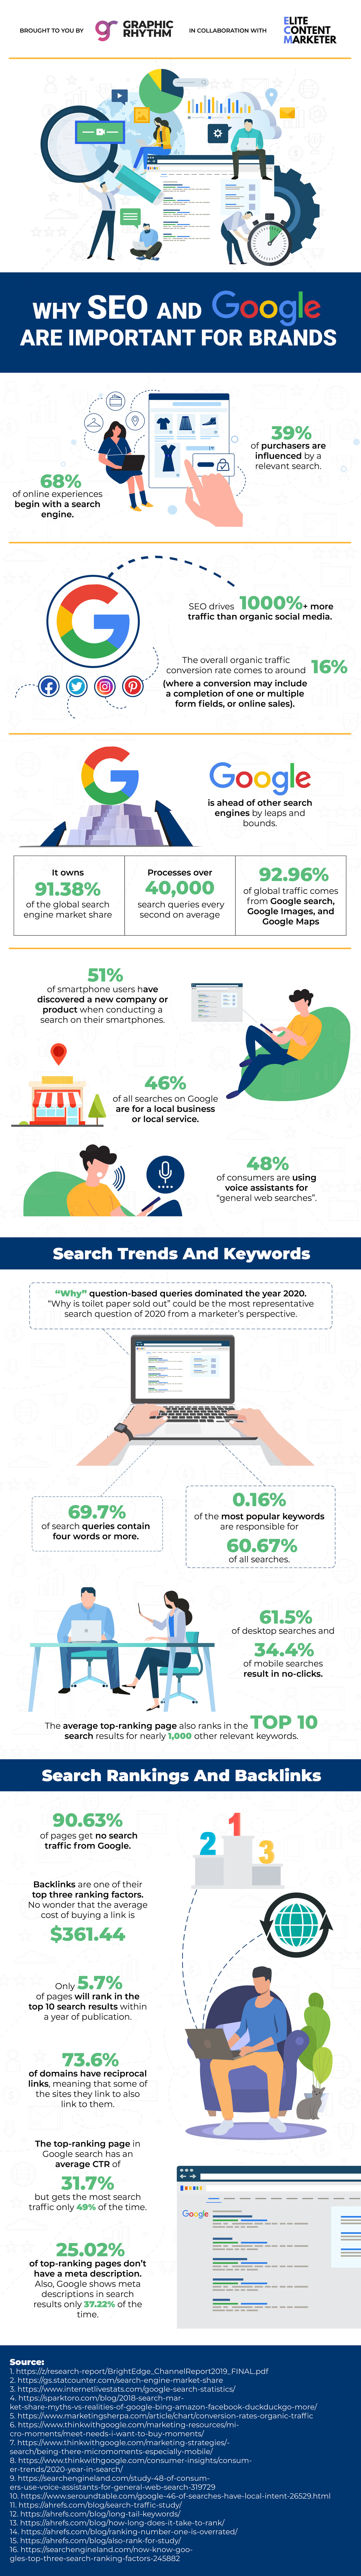 infographic-state-of-seo.jpeg